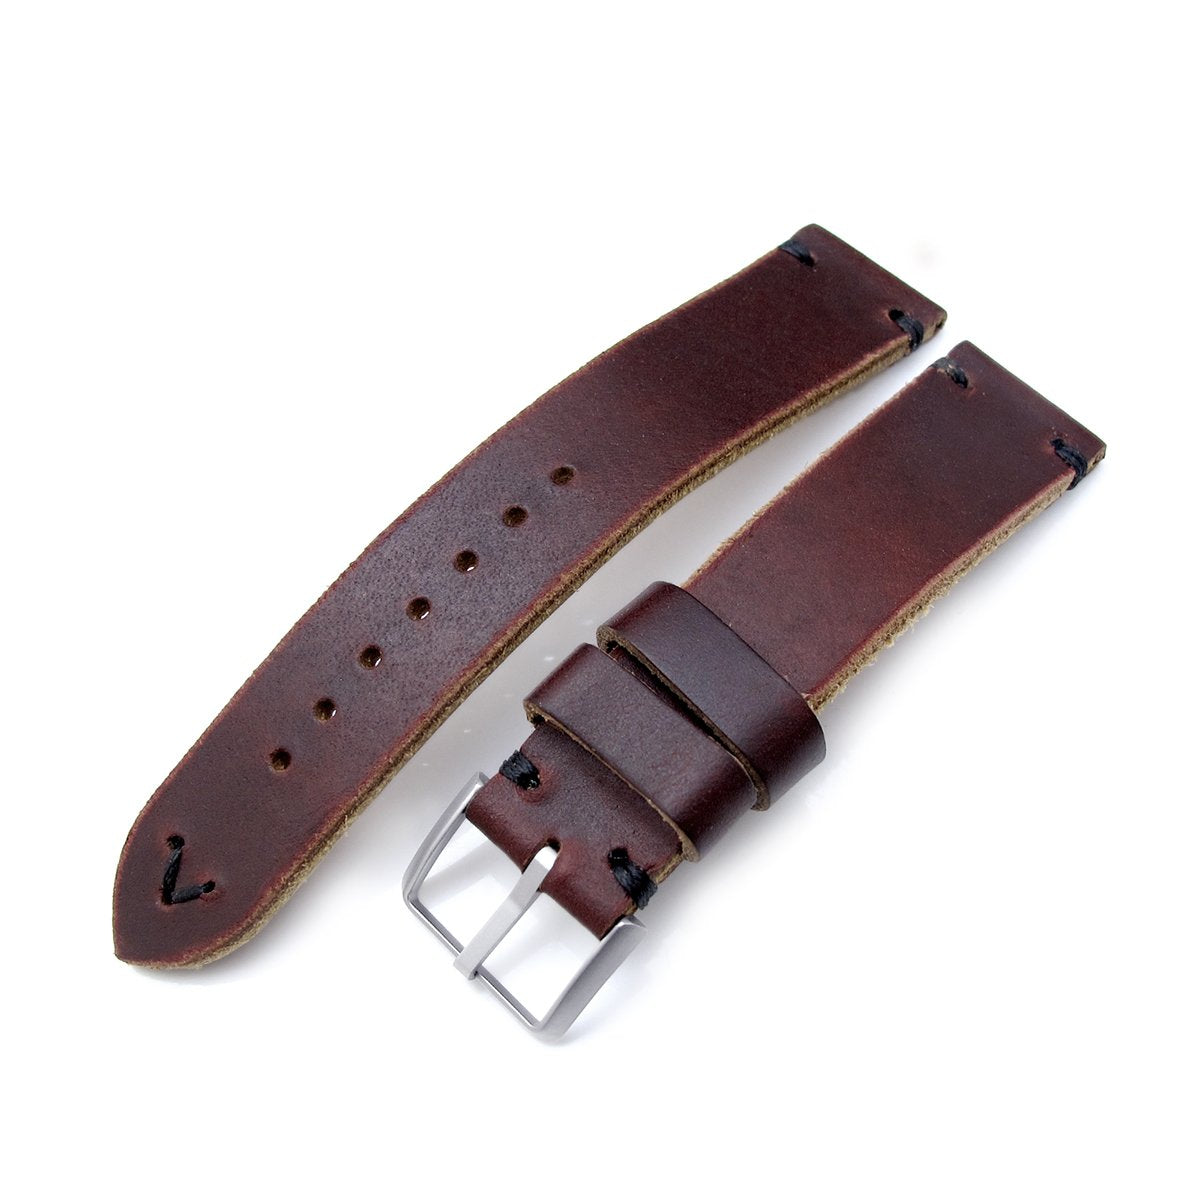 20mm 22mm MiLTAT Horween Chromexcel Watch Strap Burgundy Brown Black Stitching Strapcode Watch Bands